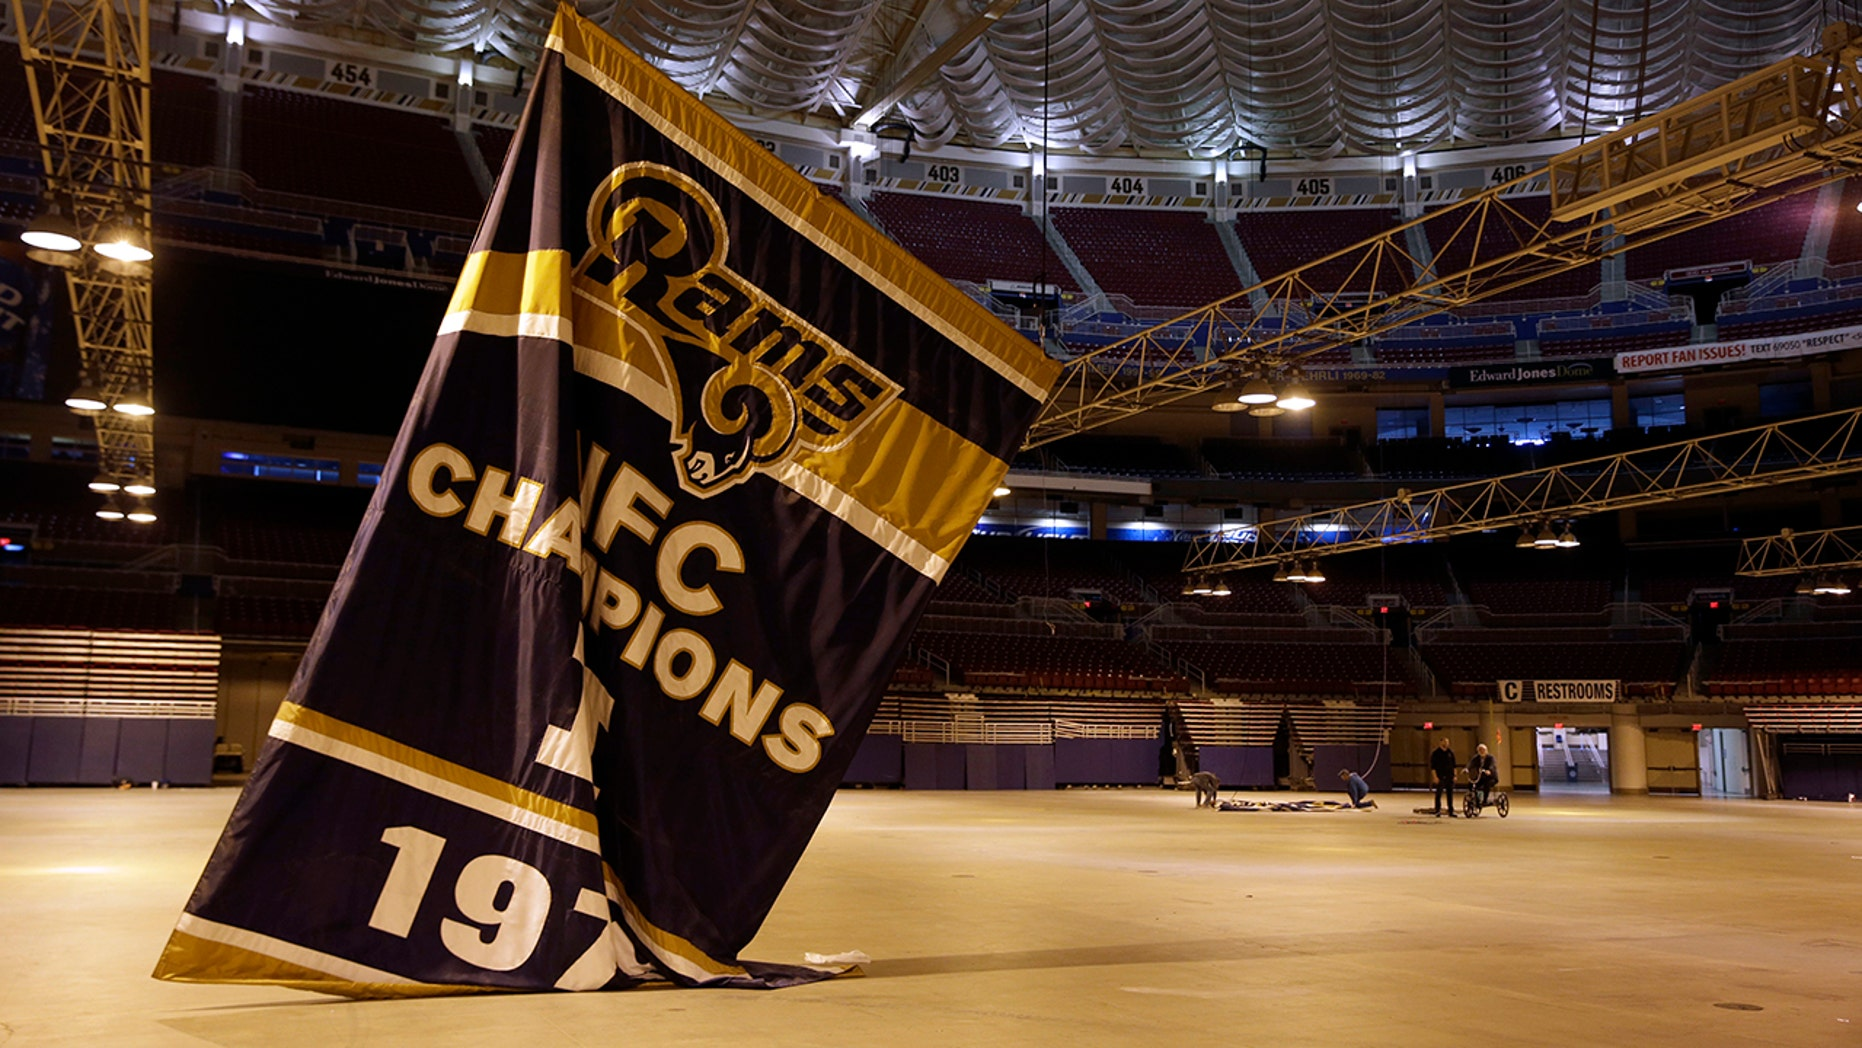 FILE - In this Jan. 14, 2016, file photo, championship banners are removed from the Edward Jones Dome, former home of the St. Louis Rams football team, in St. Louis. (AP Photo/Jeff Roberson, File)